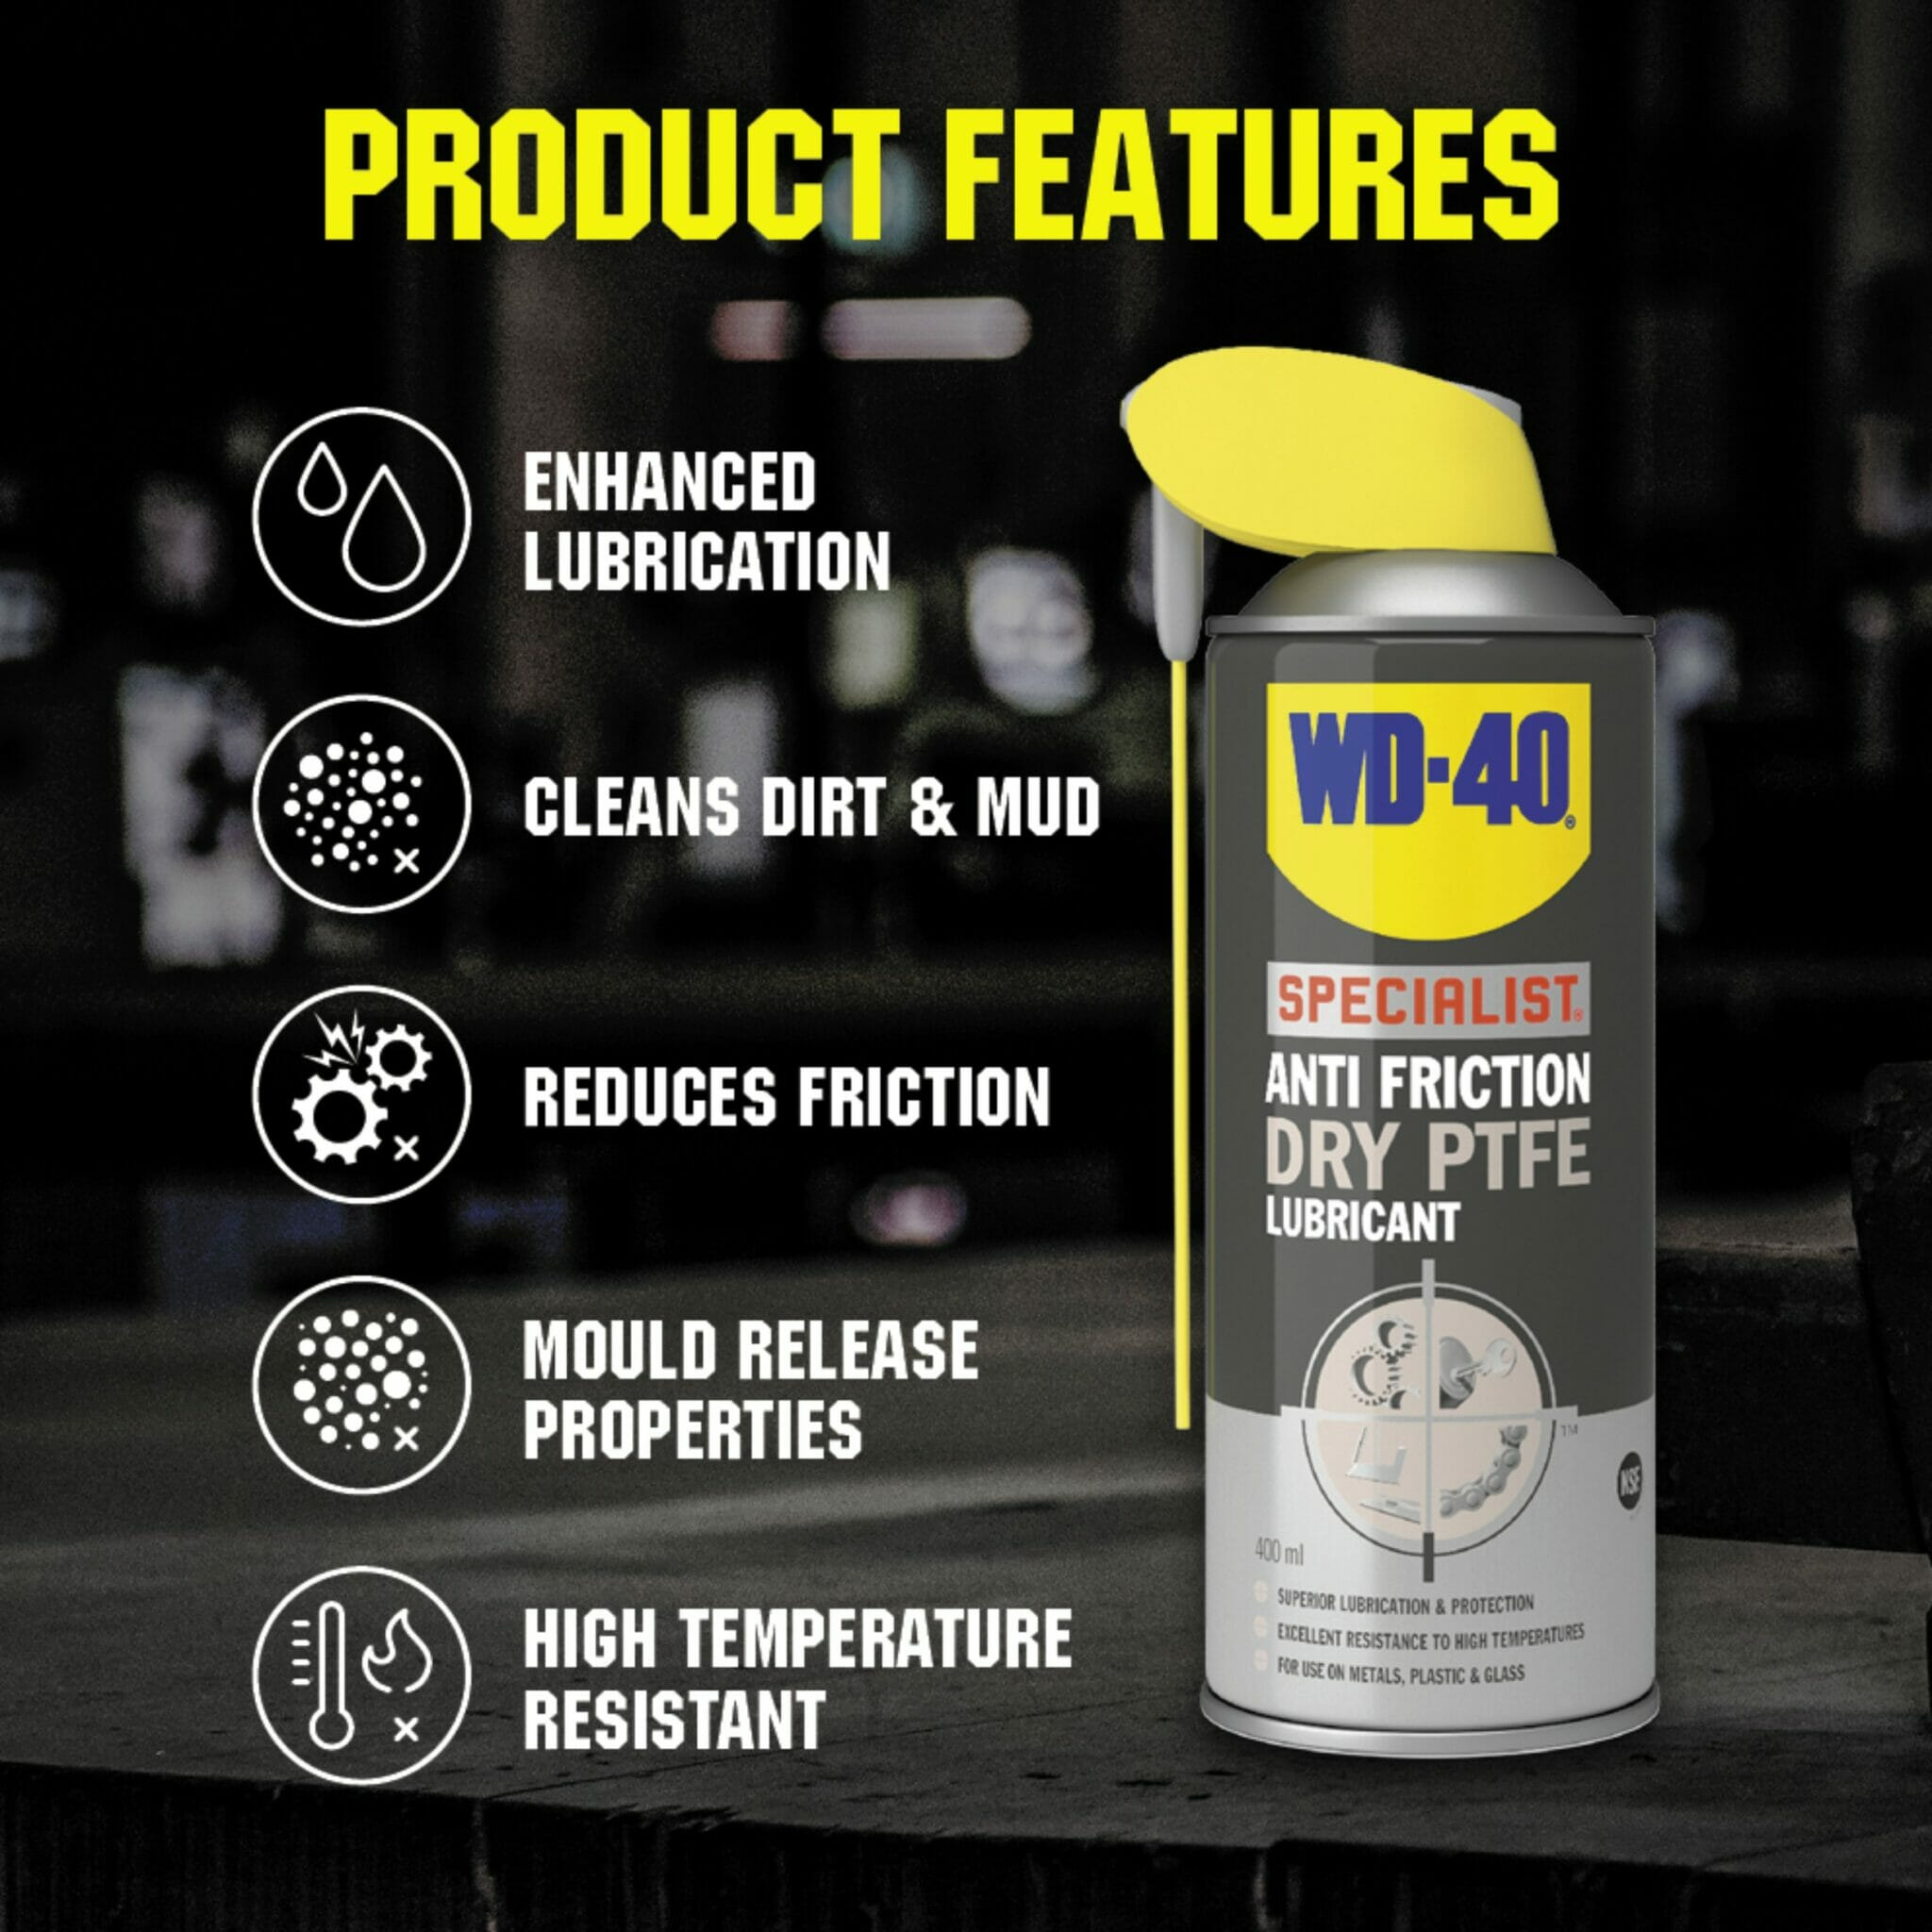 uk wd40 specialist anti friction dry friction ptfe lubricant 400ml product features lifestyle background